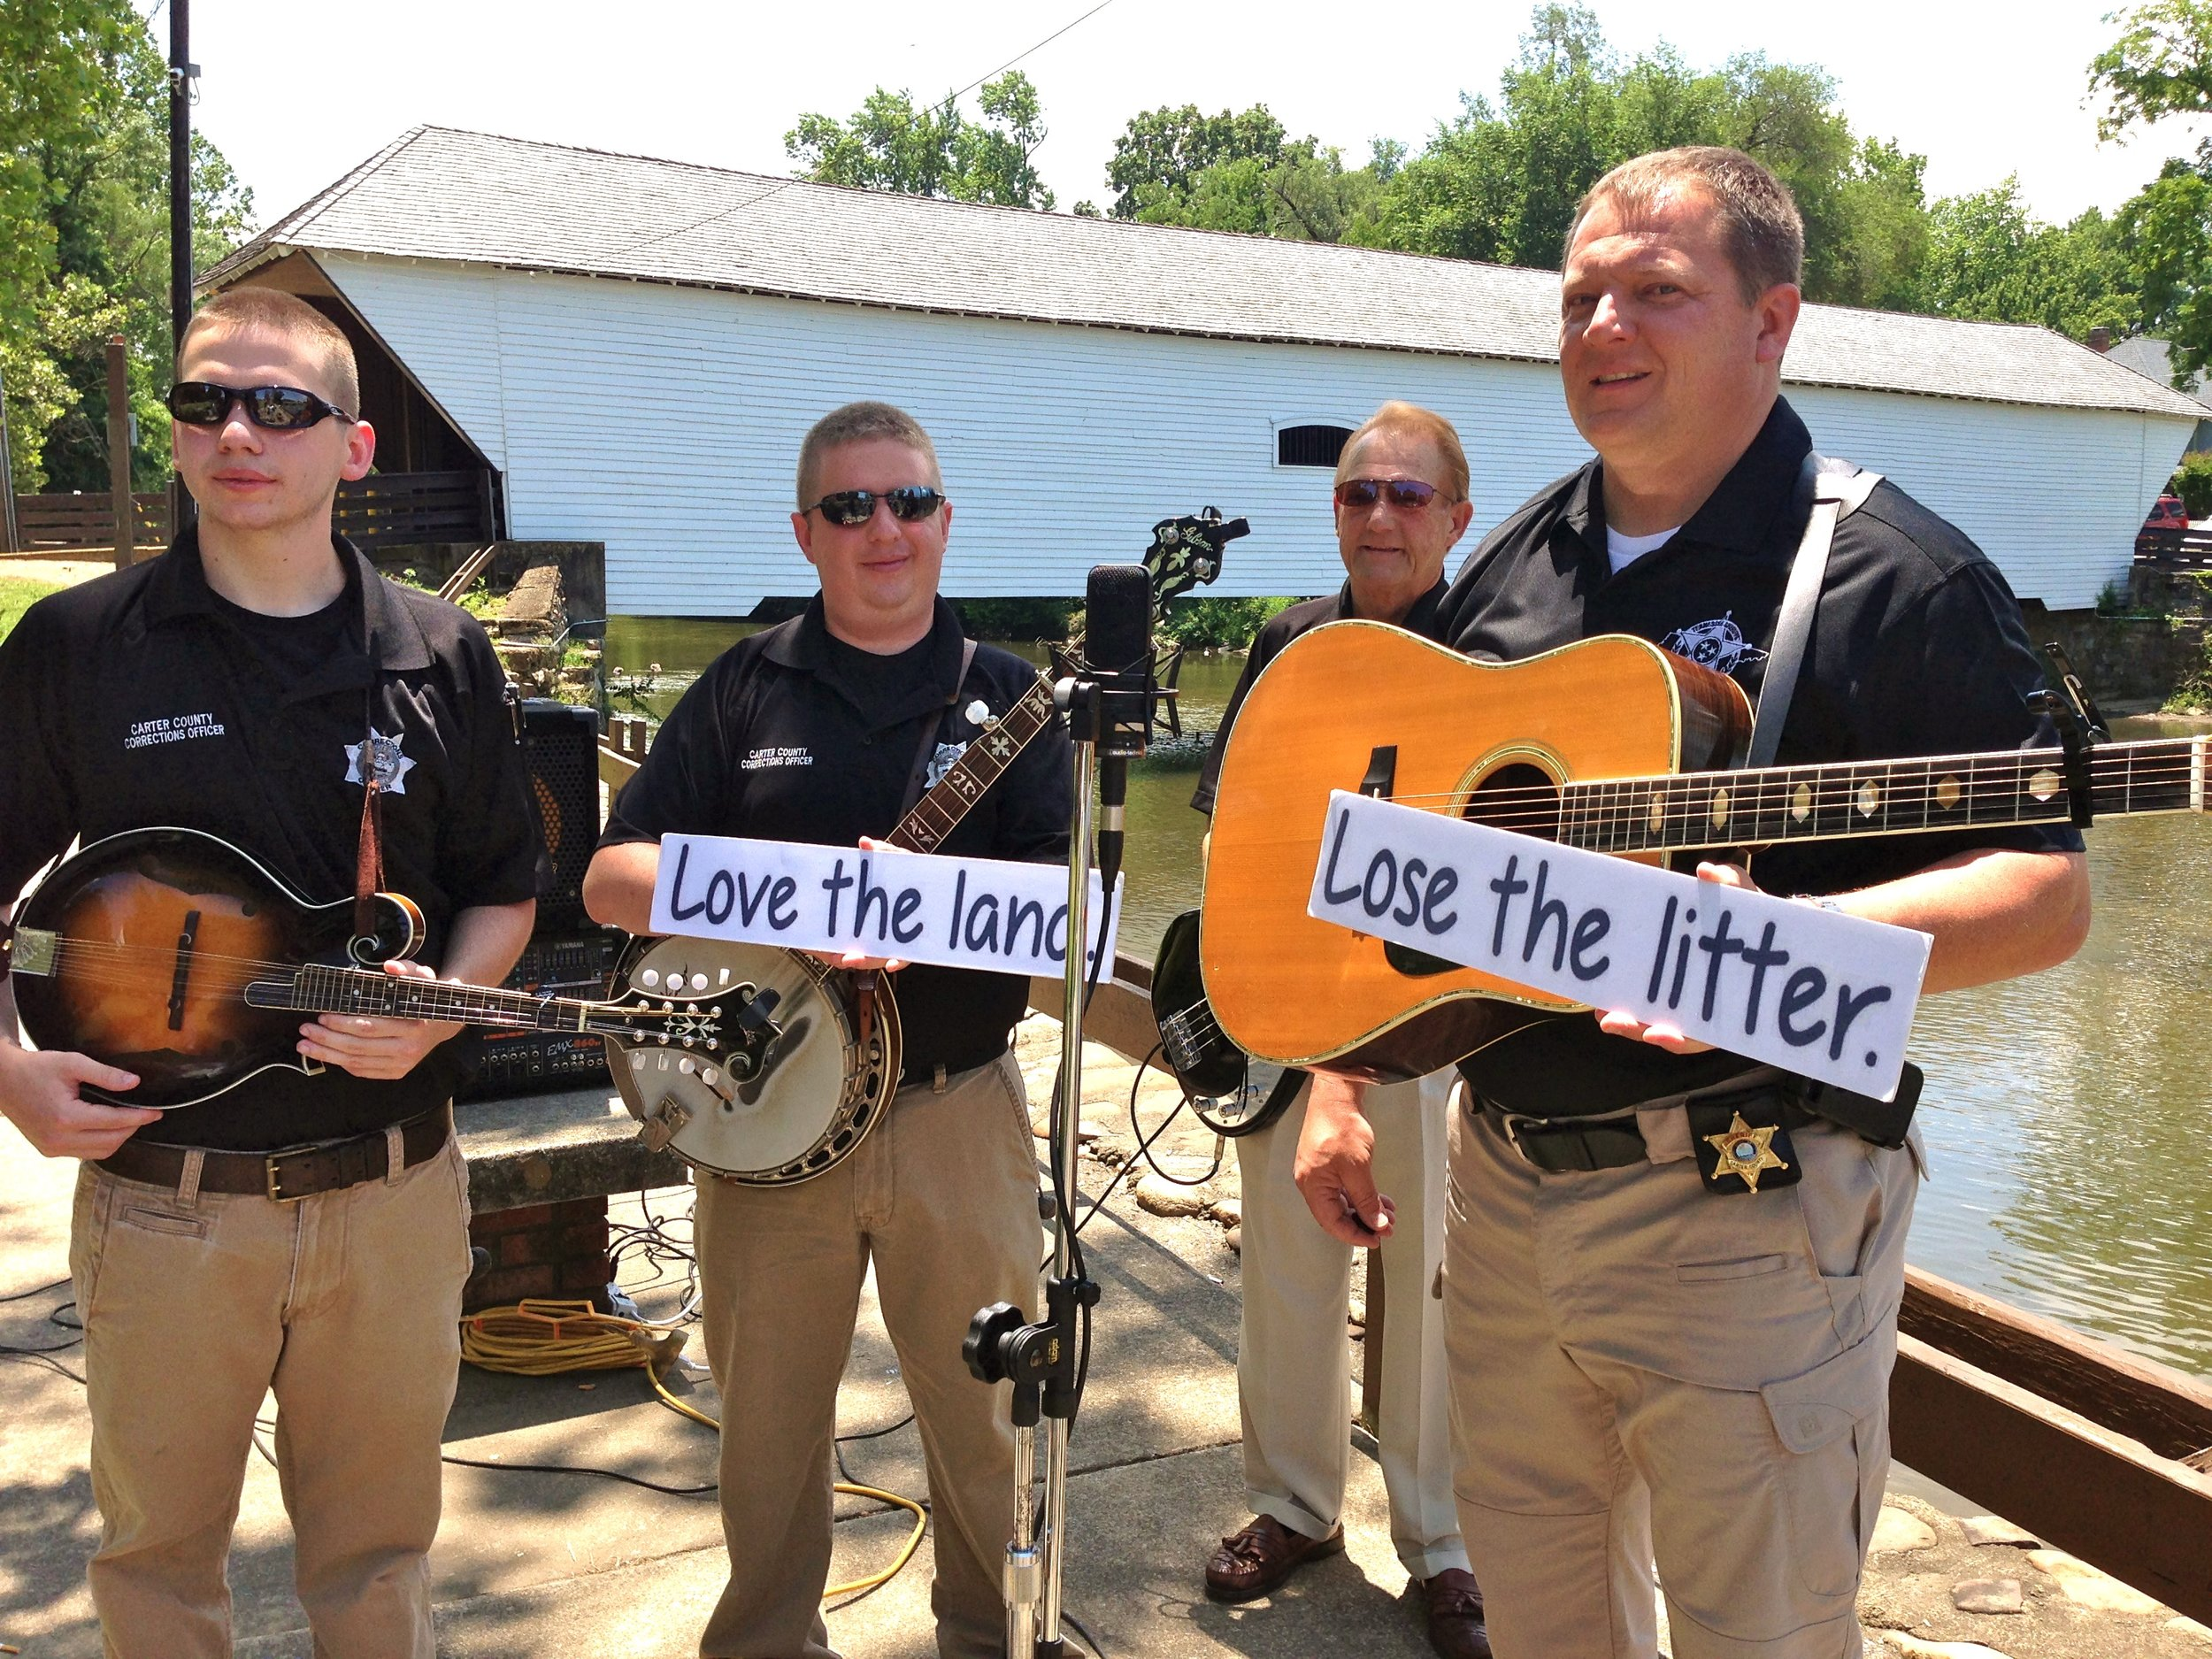 Sheriff Chris Mathes and the All-Star Jailbird Band at Elizabethton's Covered Bridge on Doe Creek. R to L: Justin Hamm (mandolin), Jackie Mathes (bass guitar), John Hamm (banjo), Chris Mathes (guitar)